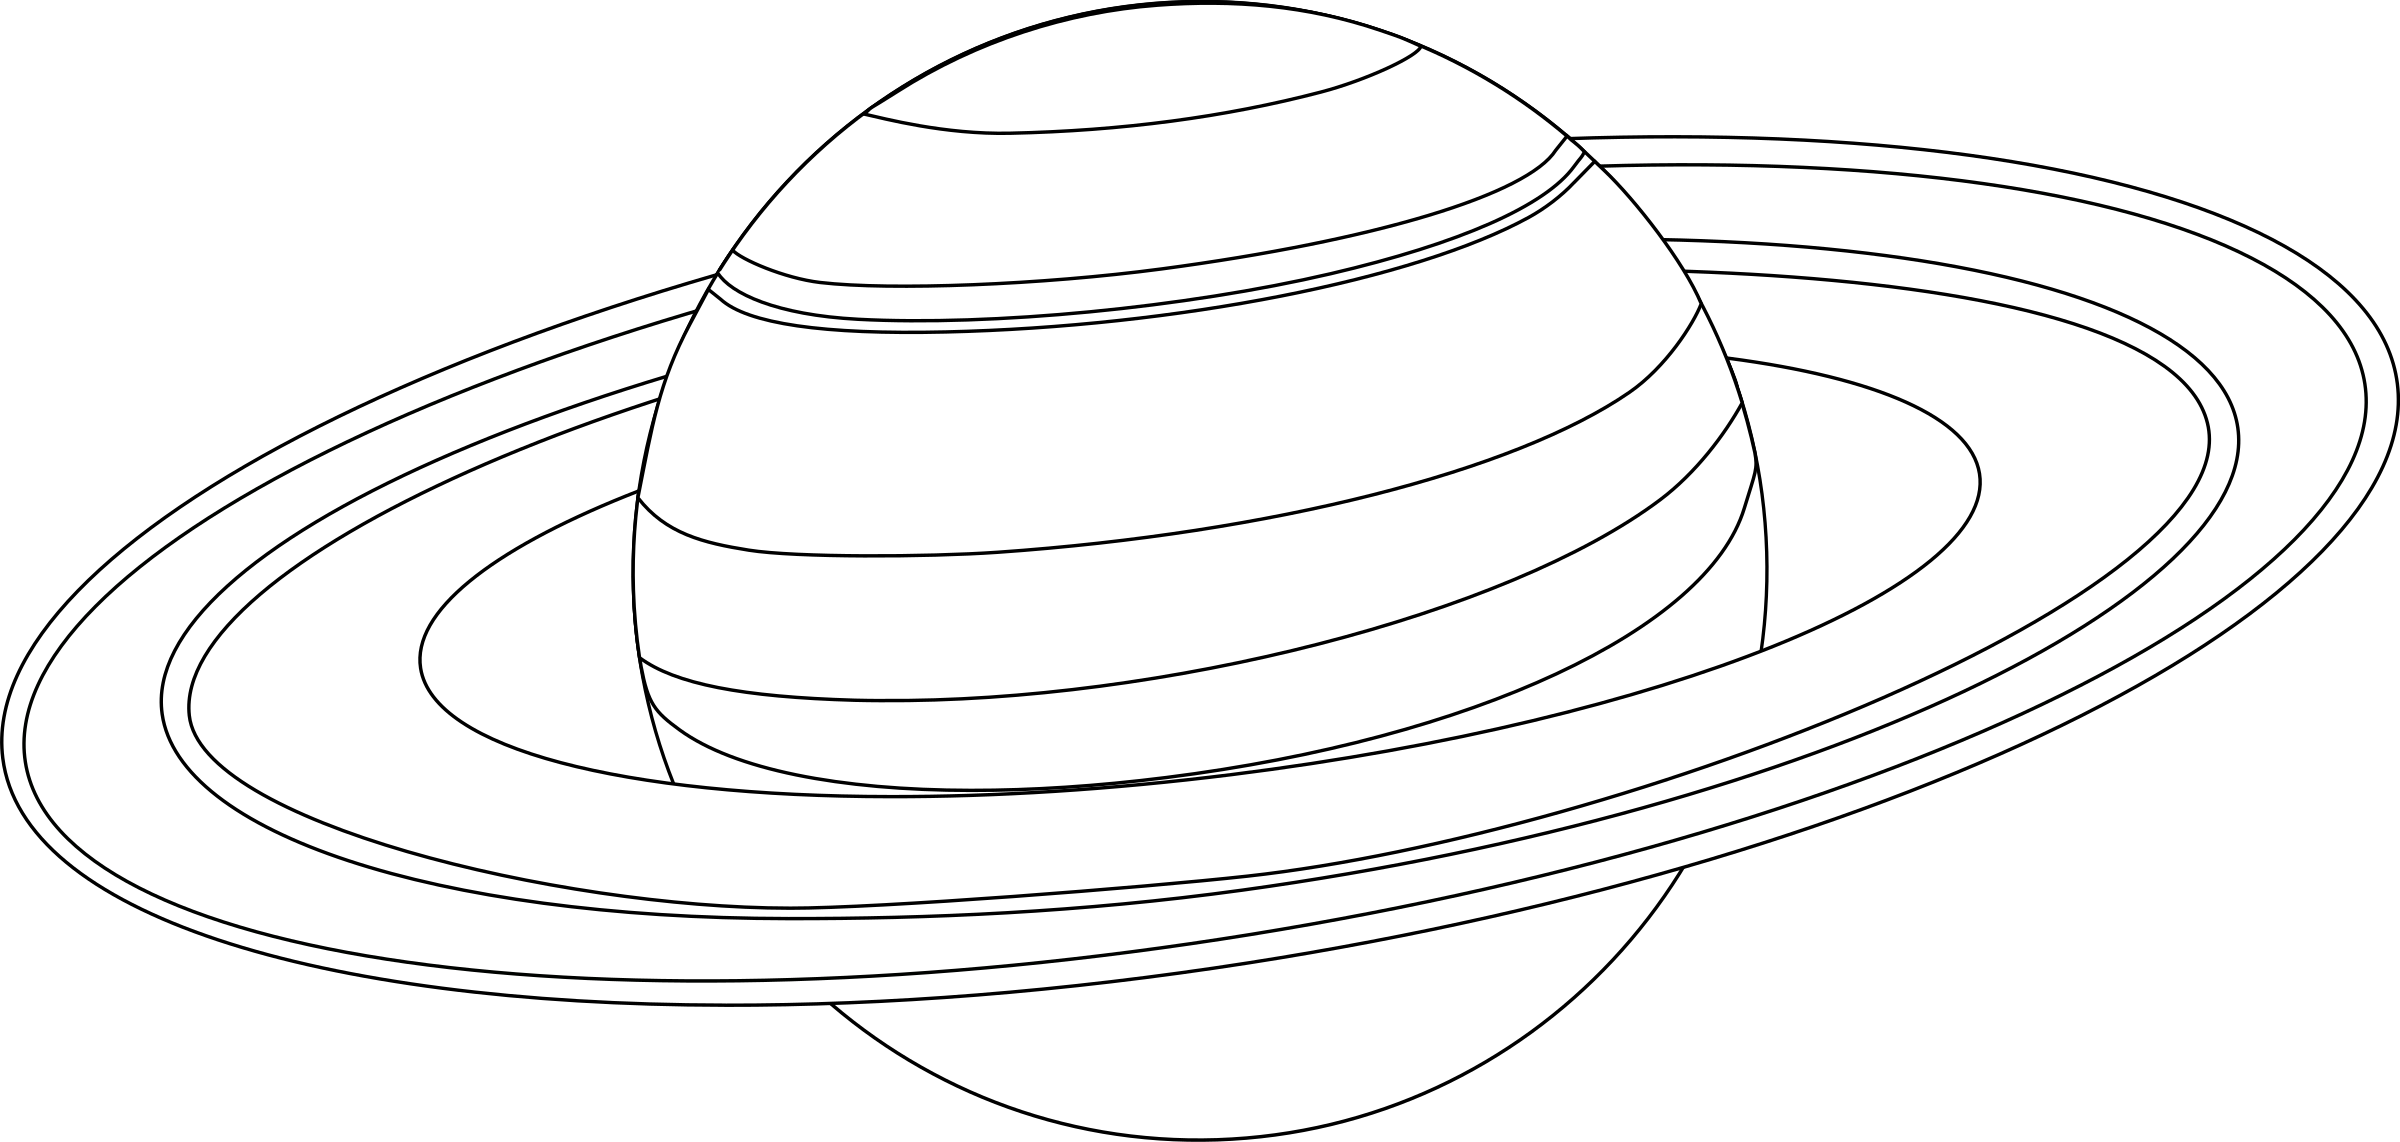 Saturn Planet Coloring Pages Planet Printable Coloring Pages Free